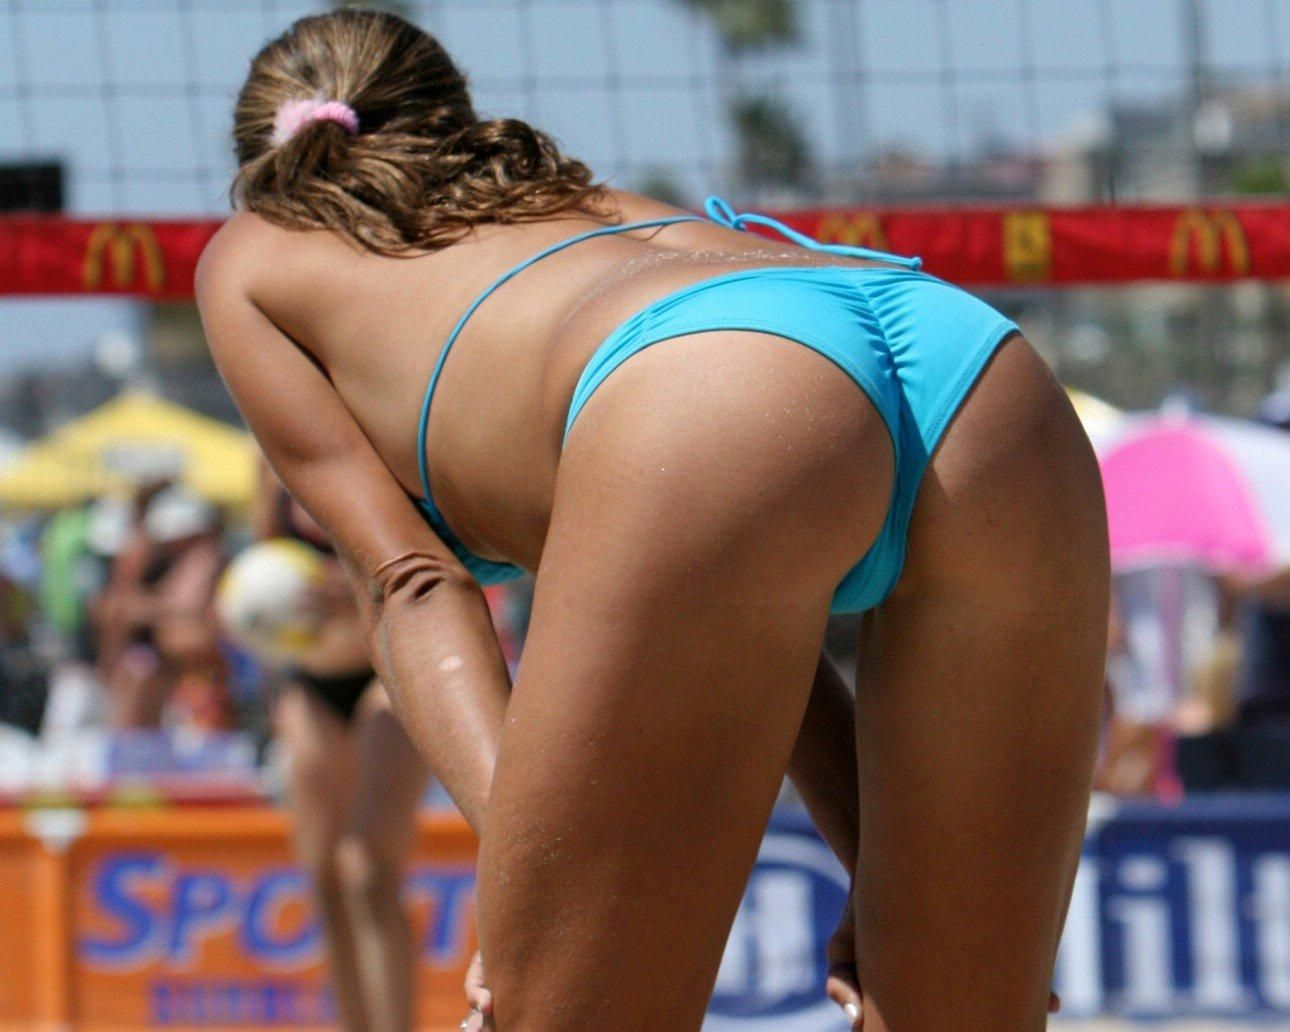 Sexy beach volleyball payers